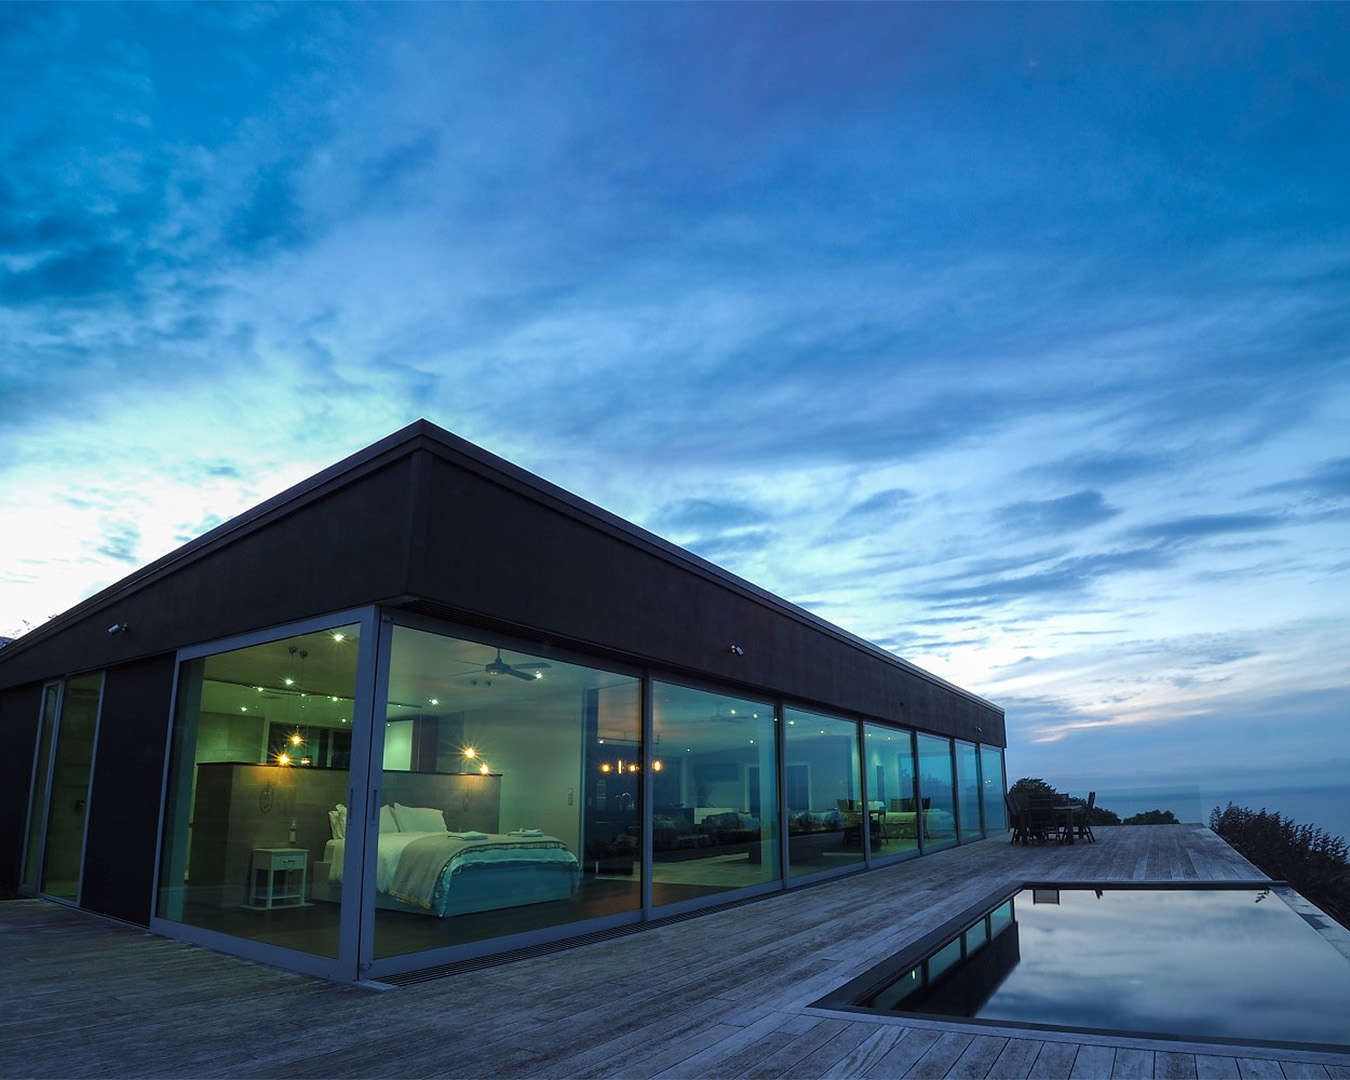 The outside of the lovely glasshouse, showing an infinity pool to the right under a sky at dusk.